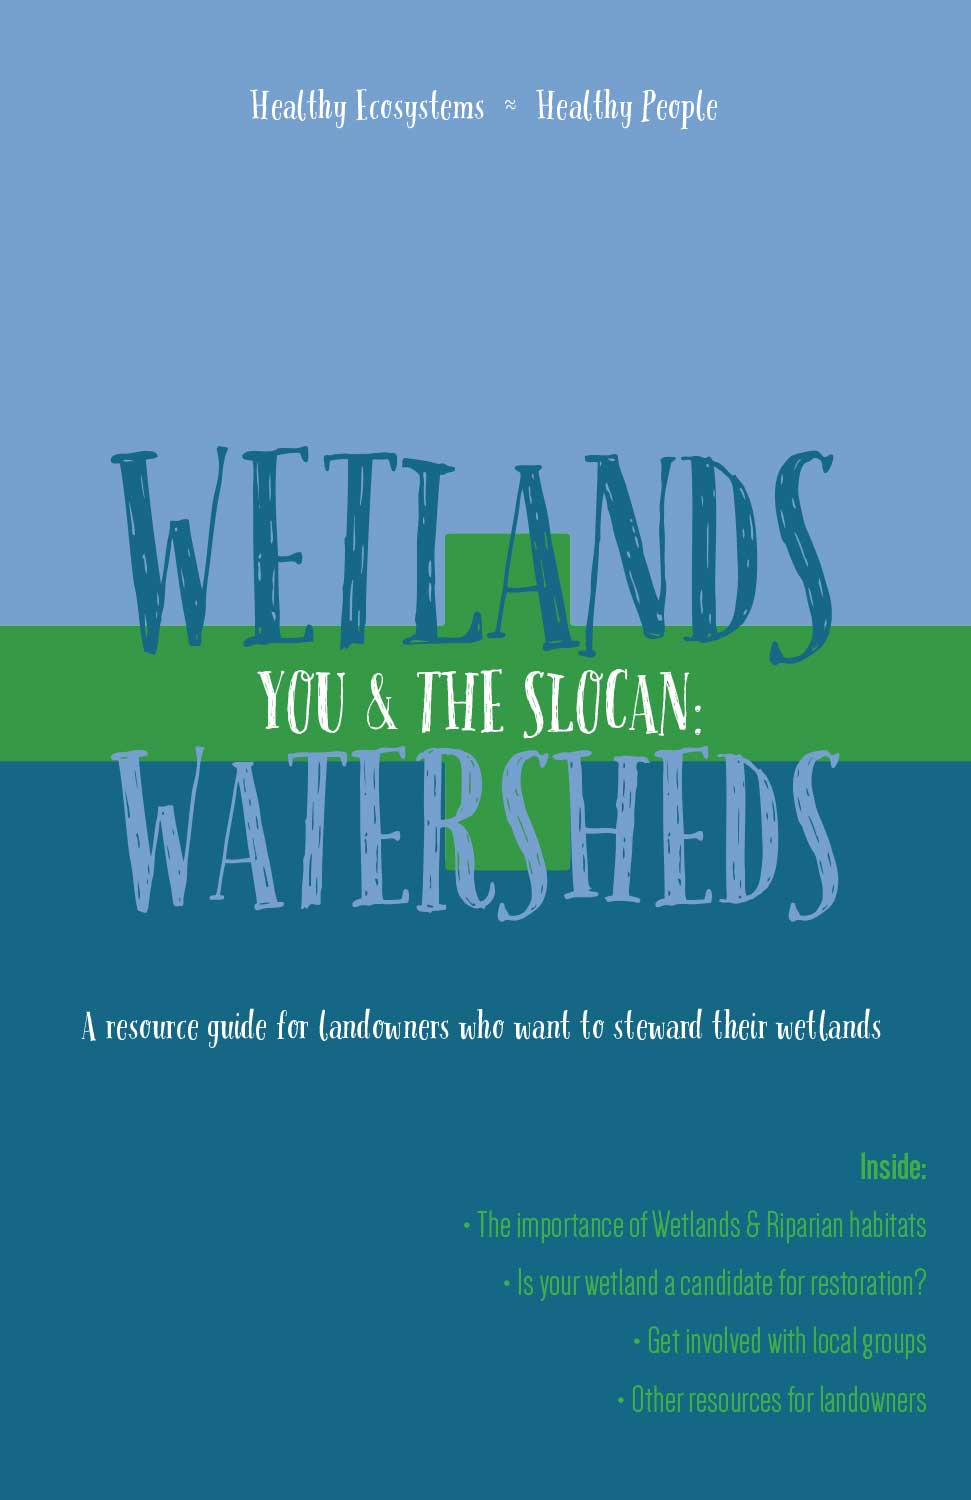 BCWF - Slocan Wetlands & Watersheds